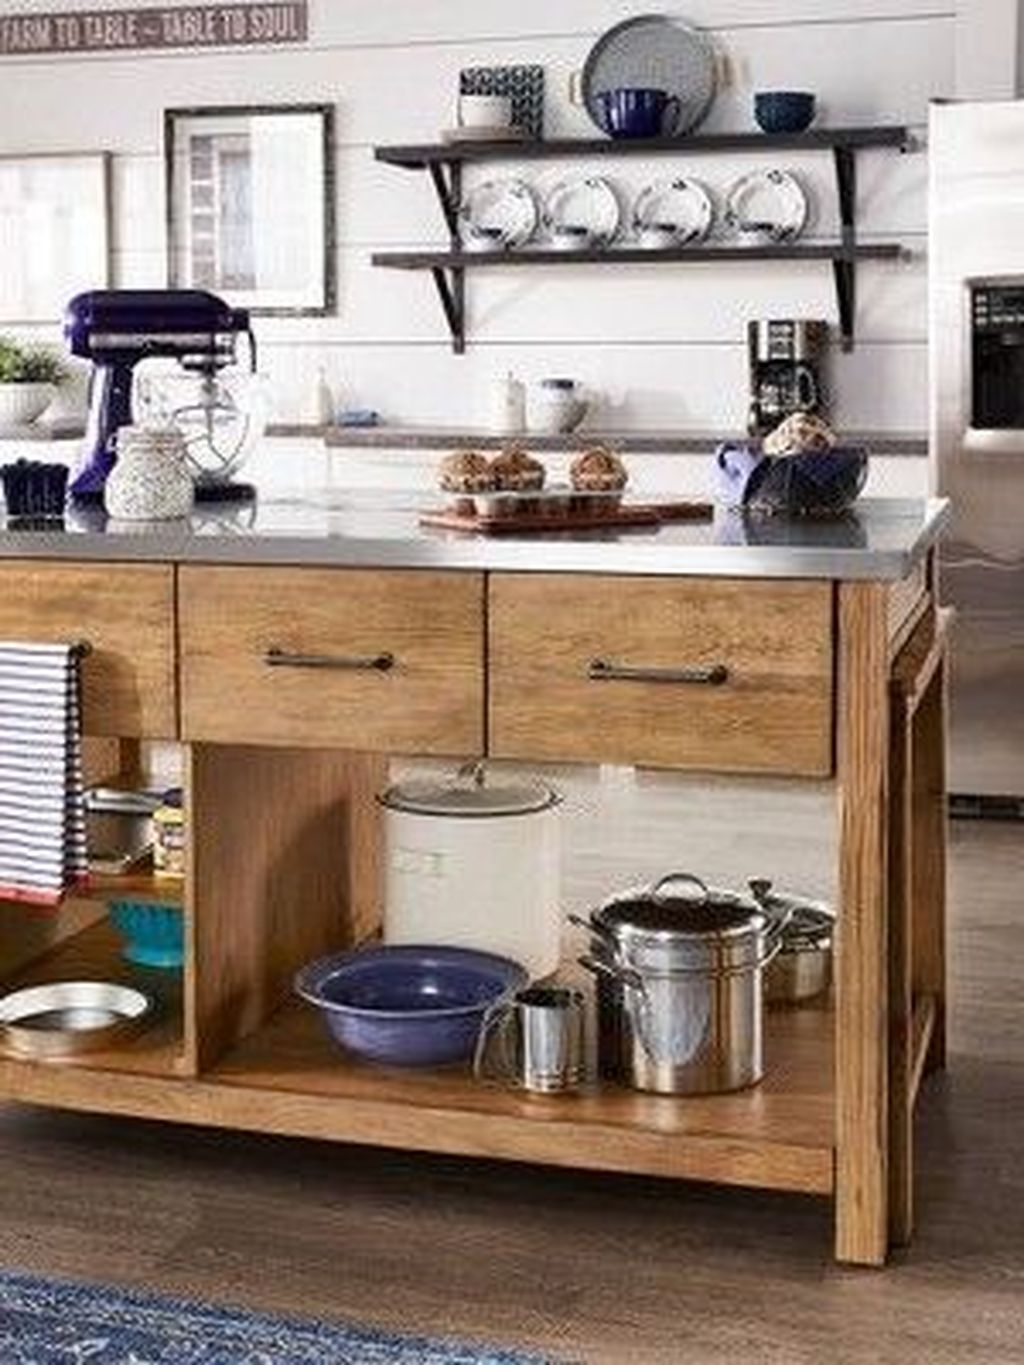 Best Tiny Kitchen Design Ideas For Your Small Space Inspiration 23